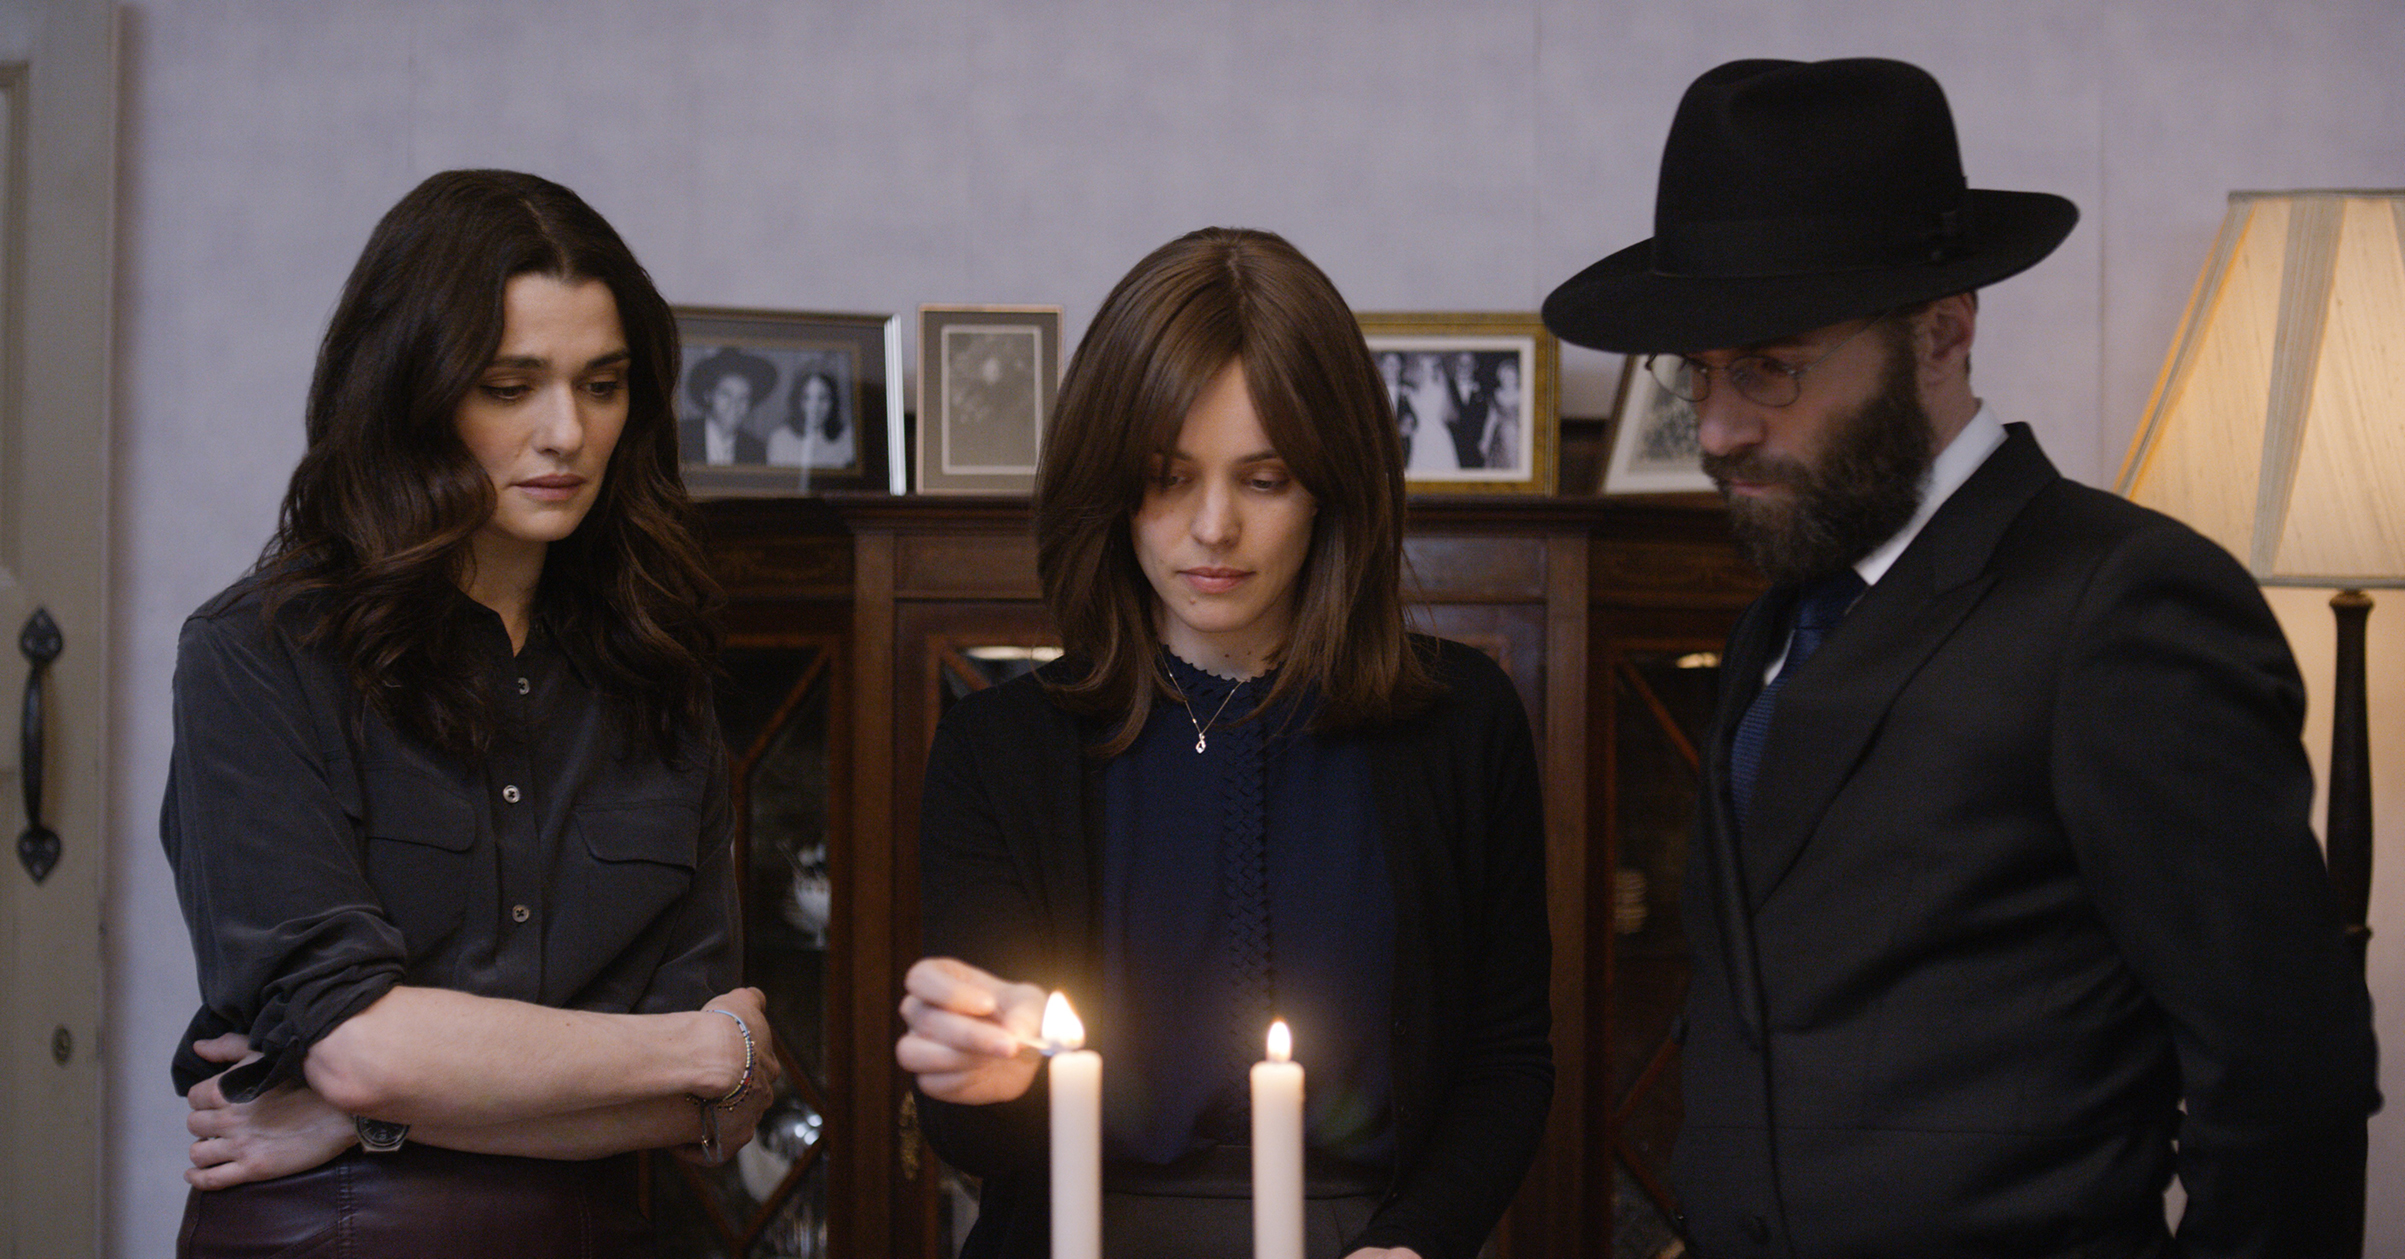 Still from the movie Disobedience.